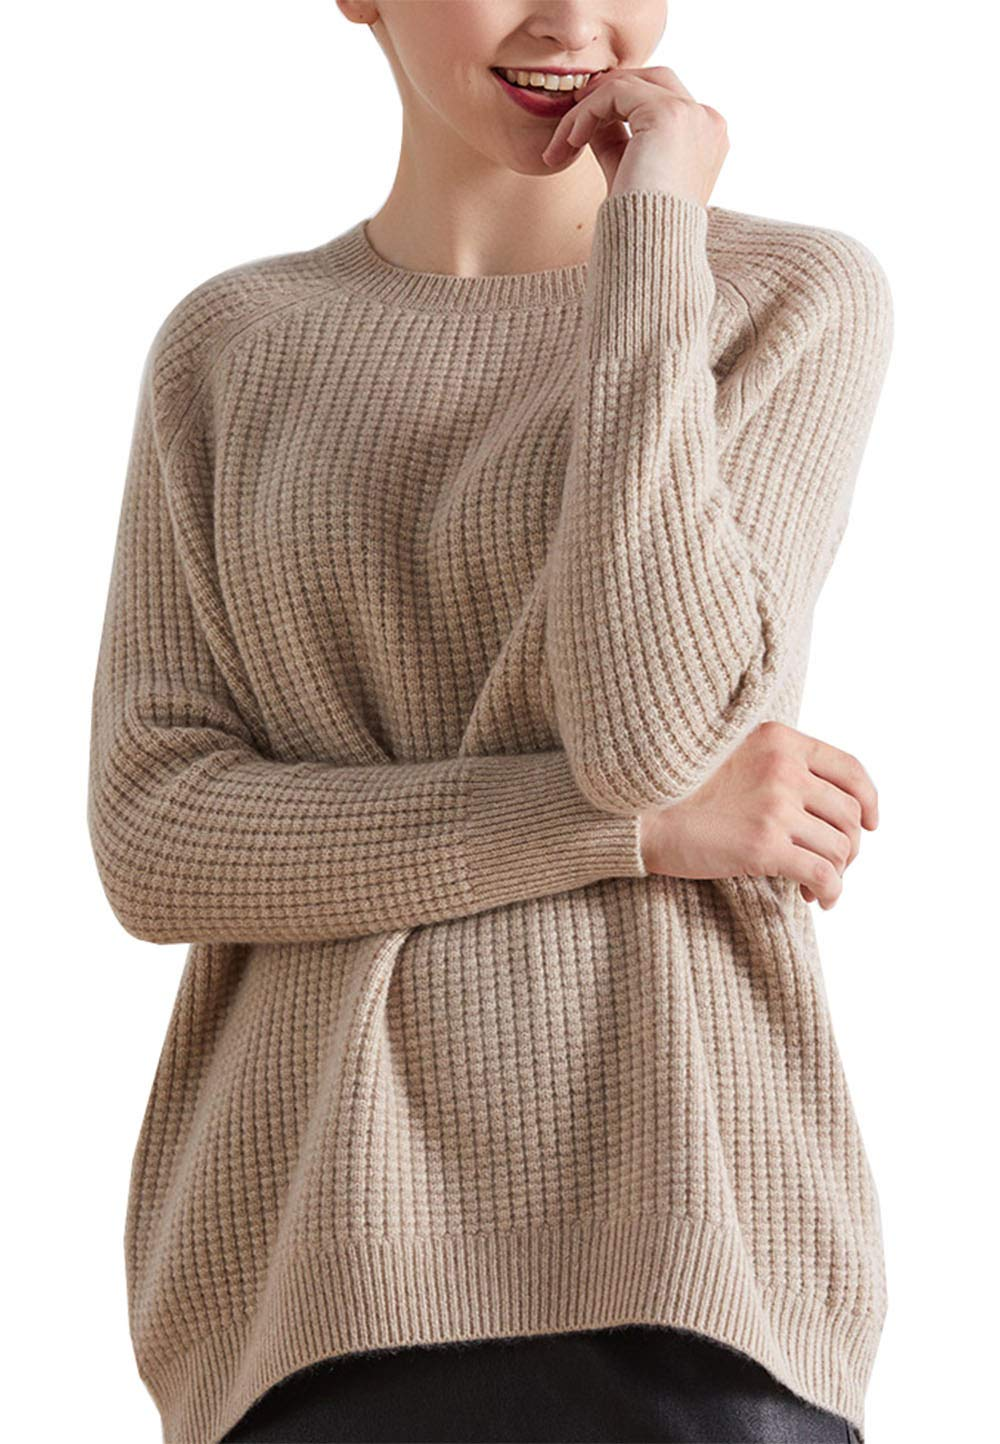 Womens Cashmere Solid Soft Cosy Loose Fit Thermal Chunky Crewneck Sweater Tops Sweatshirt Camel US 2